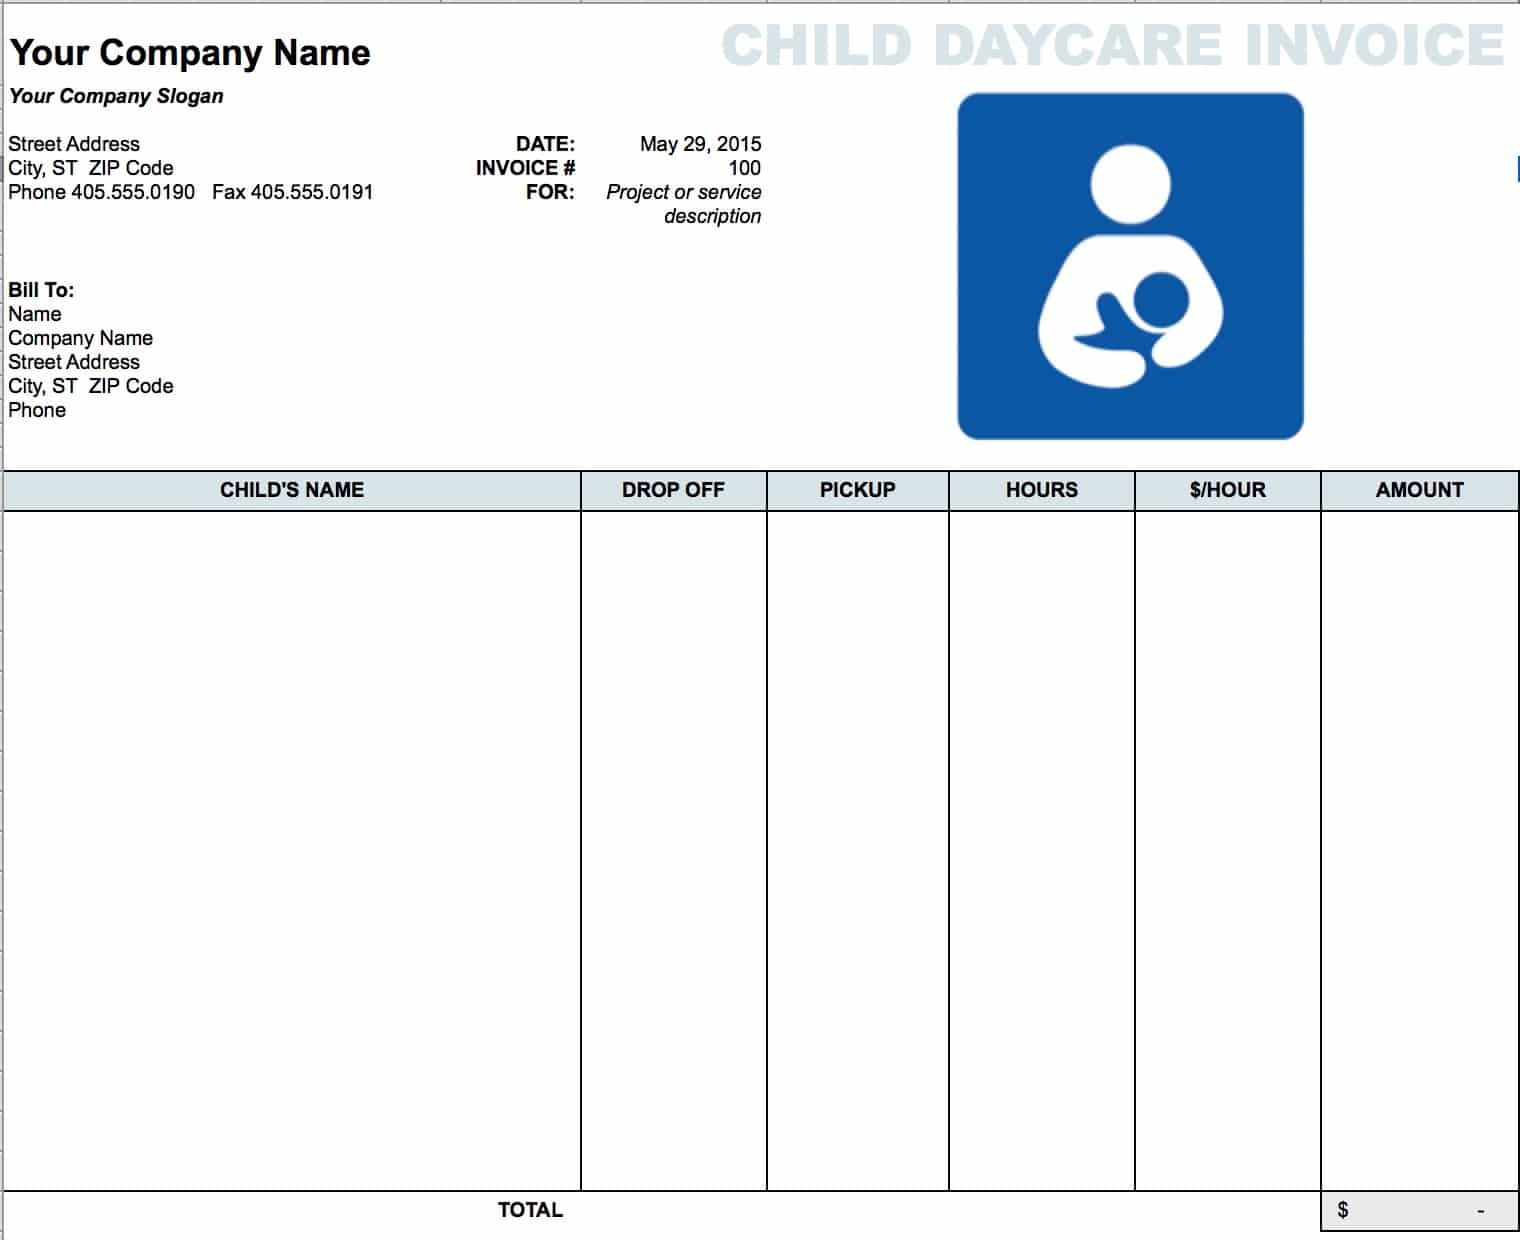 Free Daycare Child Invoice Template Excel PDF Word Doc - Invoices templates word for service business